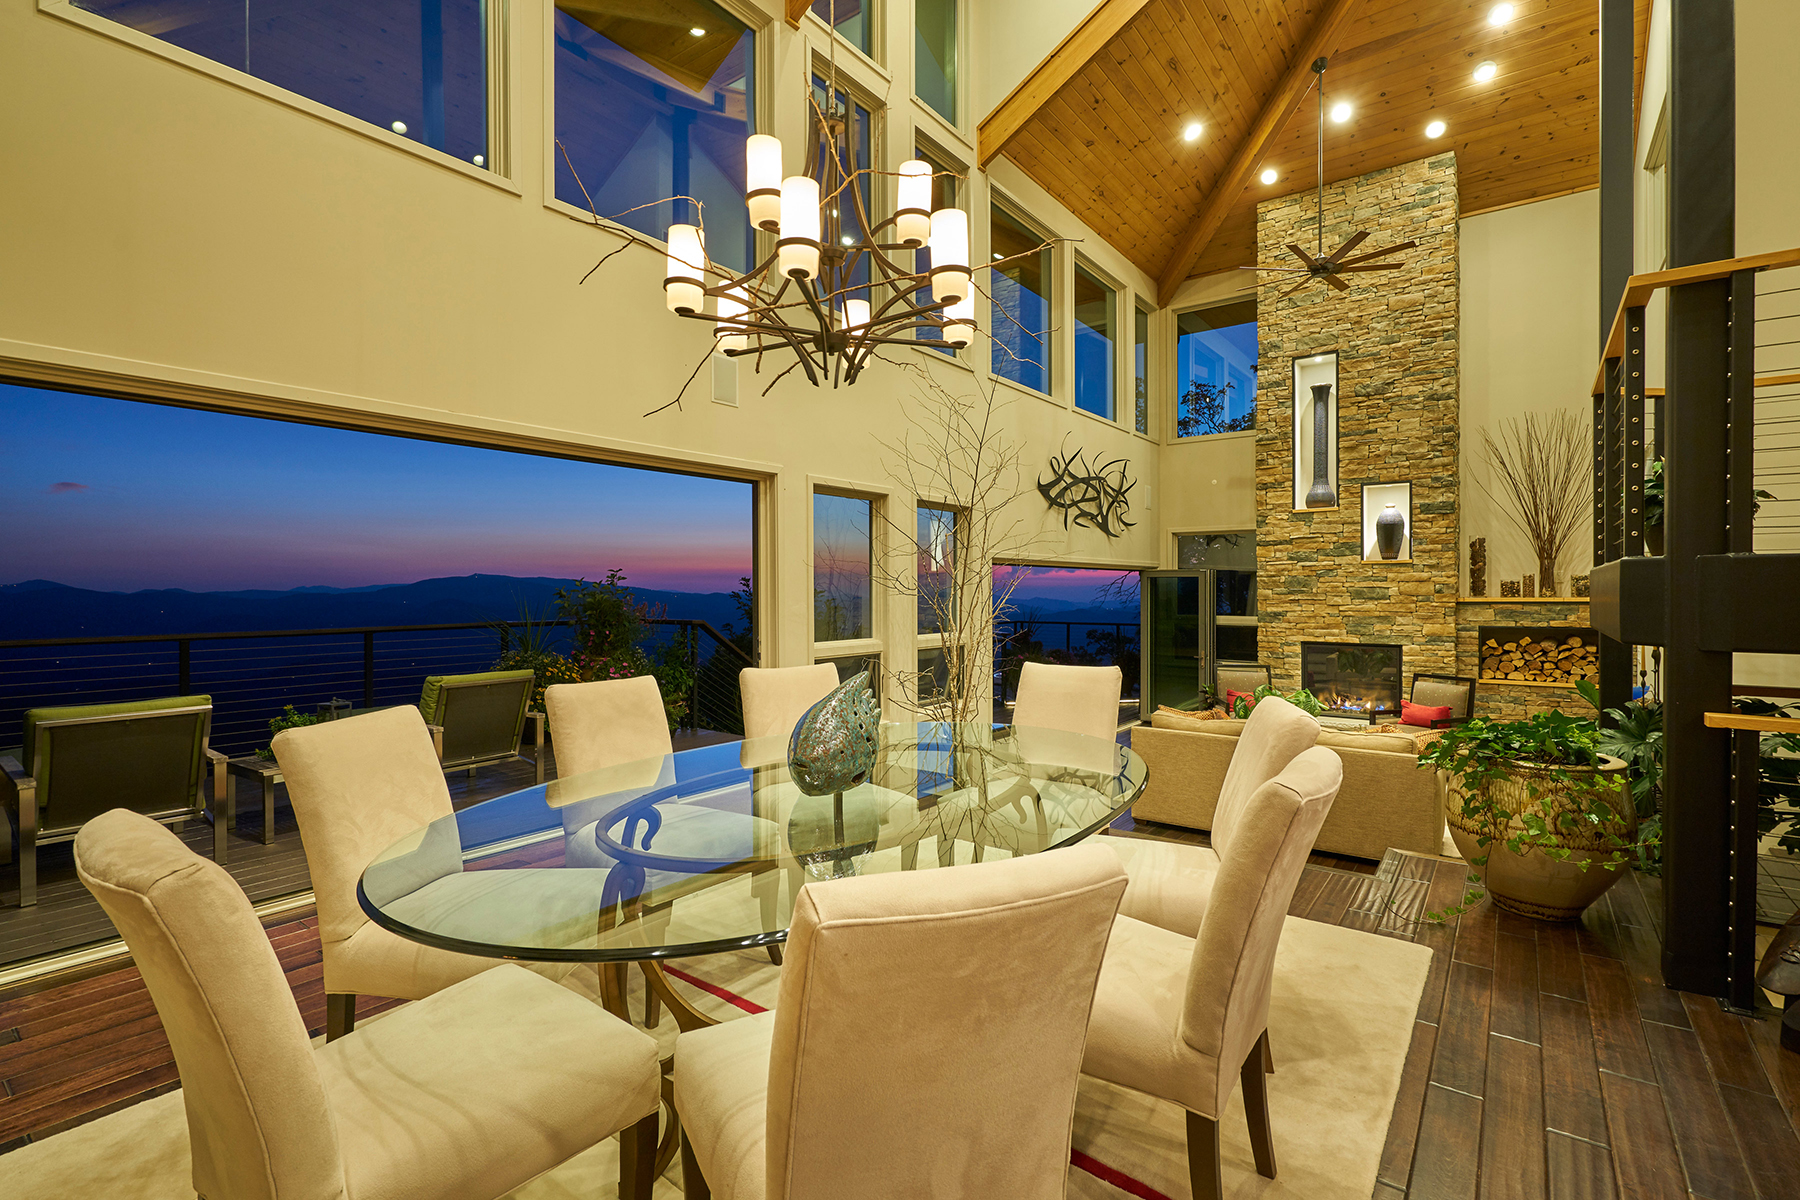 Single Family Homes for Sale at WOODLAND SPRINGS - BOONE 870 Saddle Rd Boone, North Carolina 28607 United States